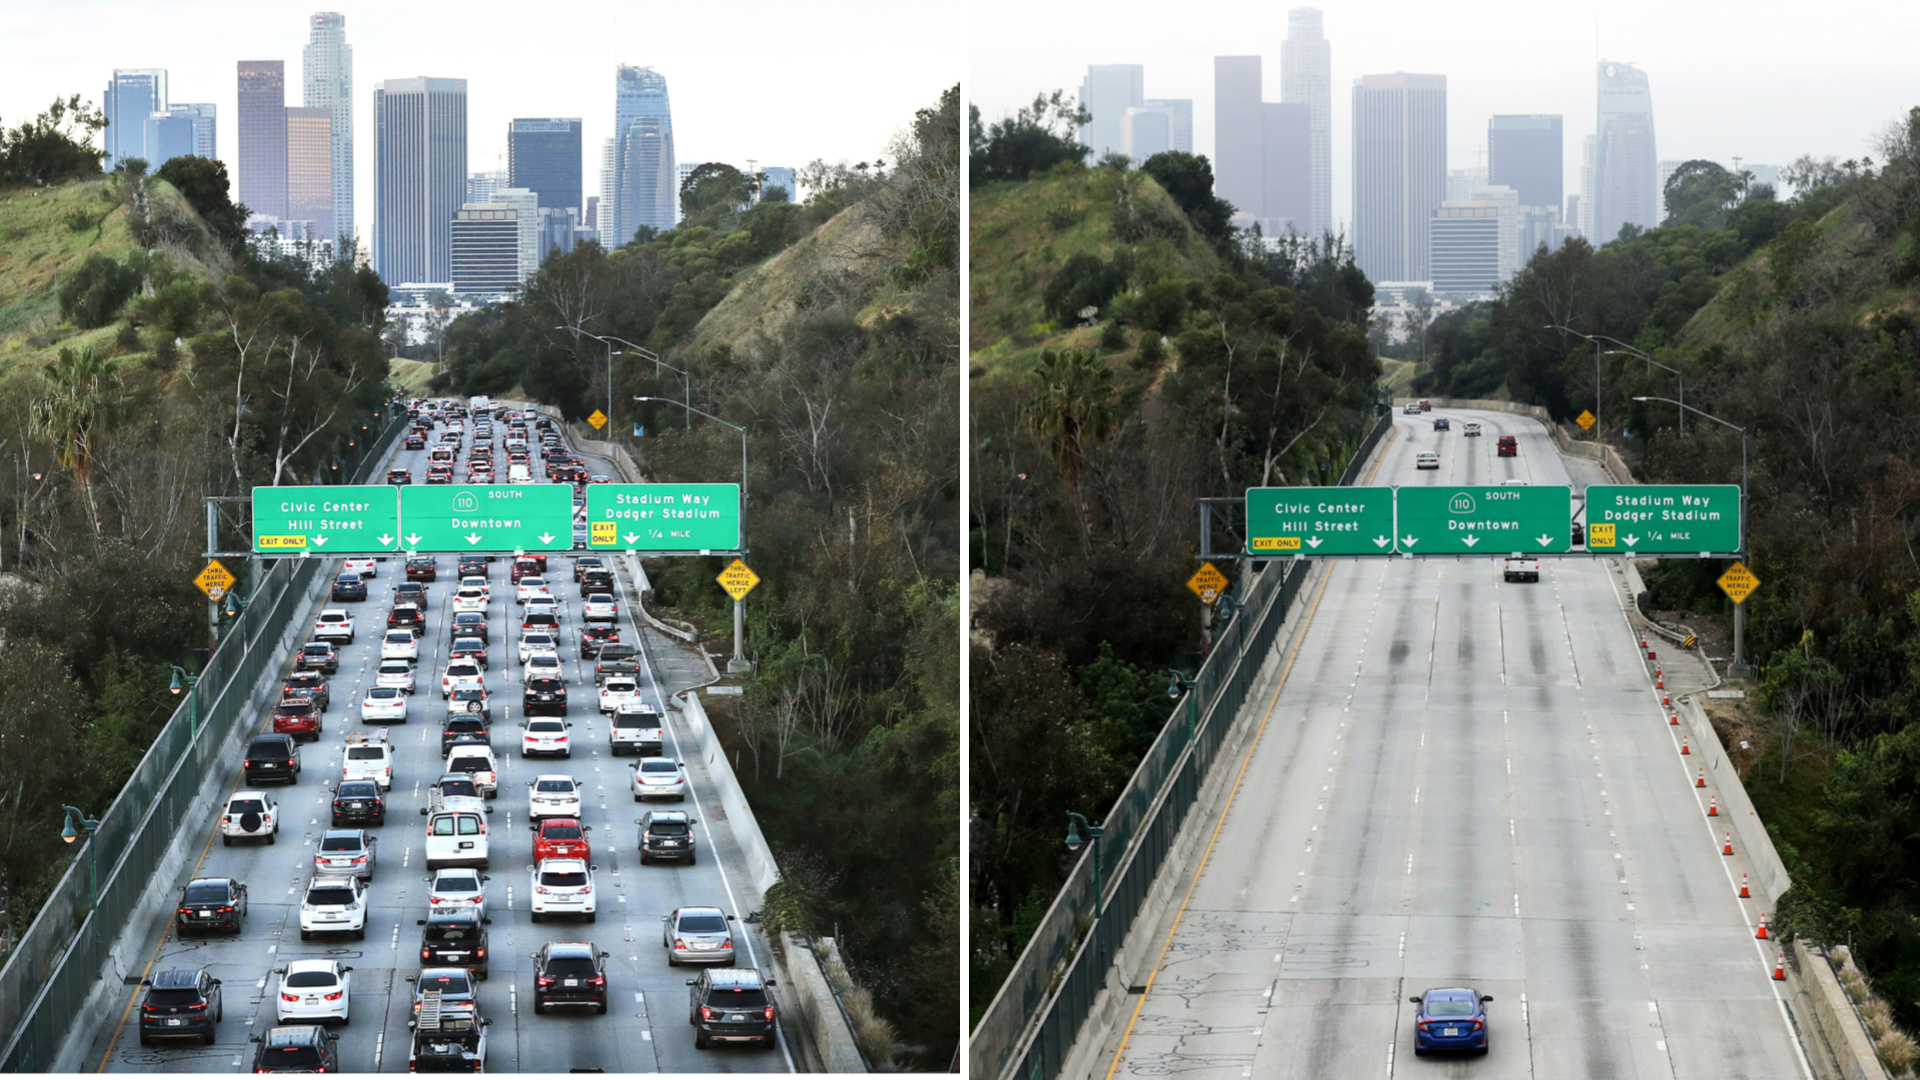 On the left, the 110 Freeway is seen on March 12, 2020, in Los Angeles, California. On the right, it is seen during what is normally morning rush hour amidst the coronavirus pandemic on April 17, 2020. (Mario Tama/Getty Images)